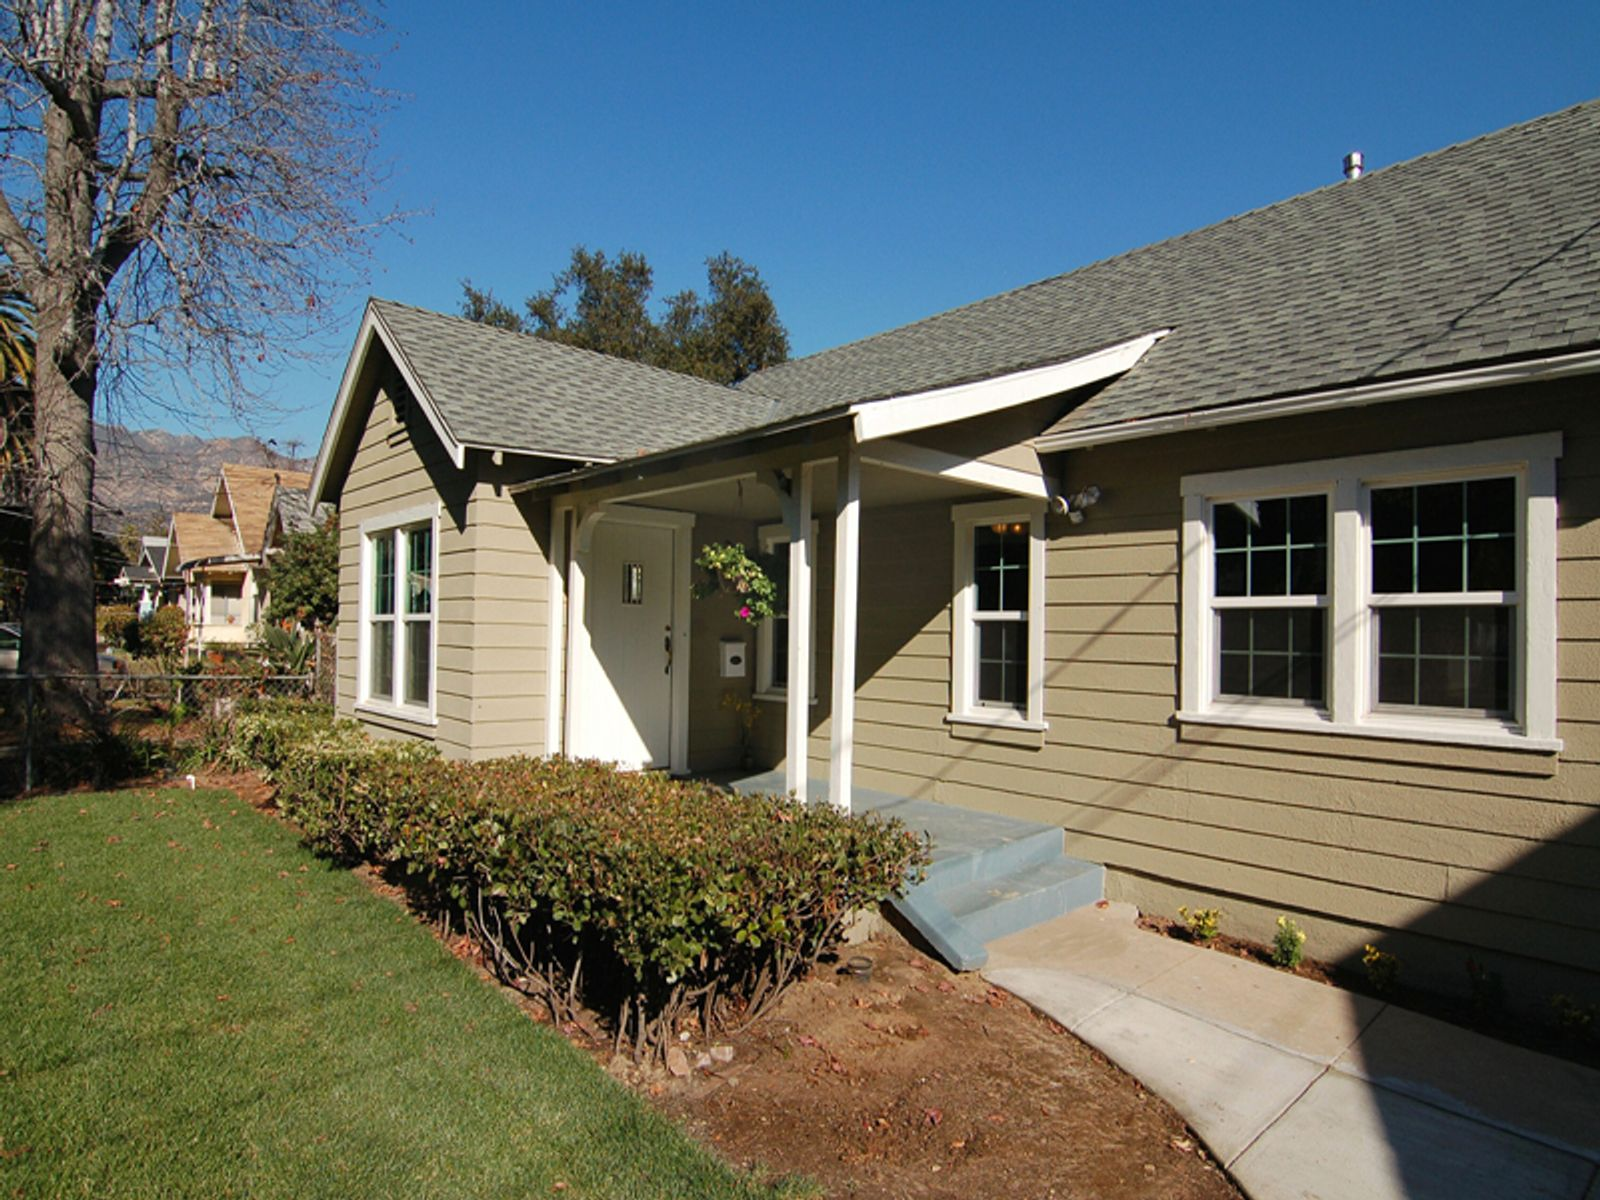 Charming Bungalow on Large Lot